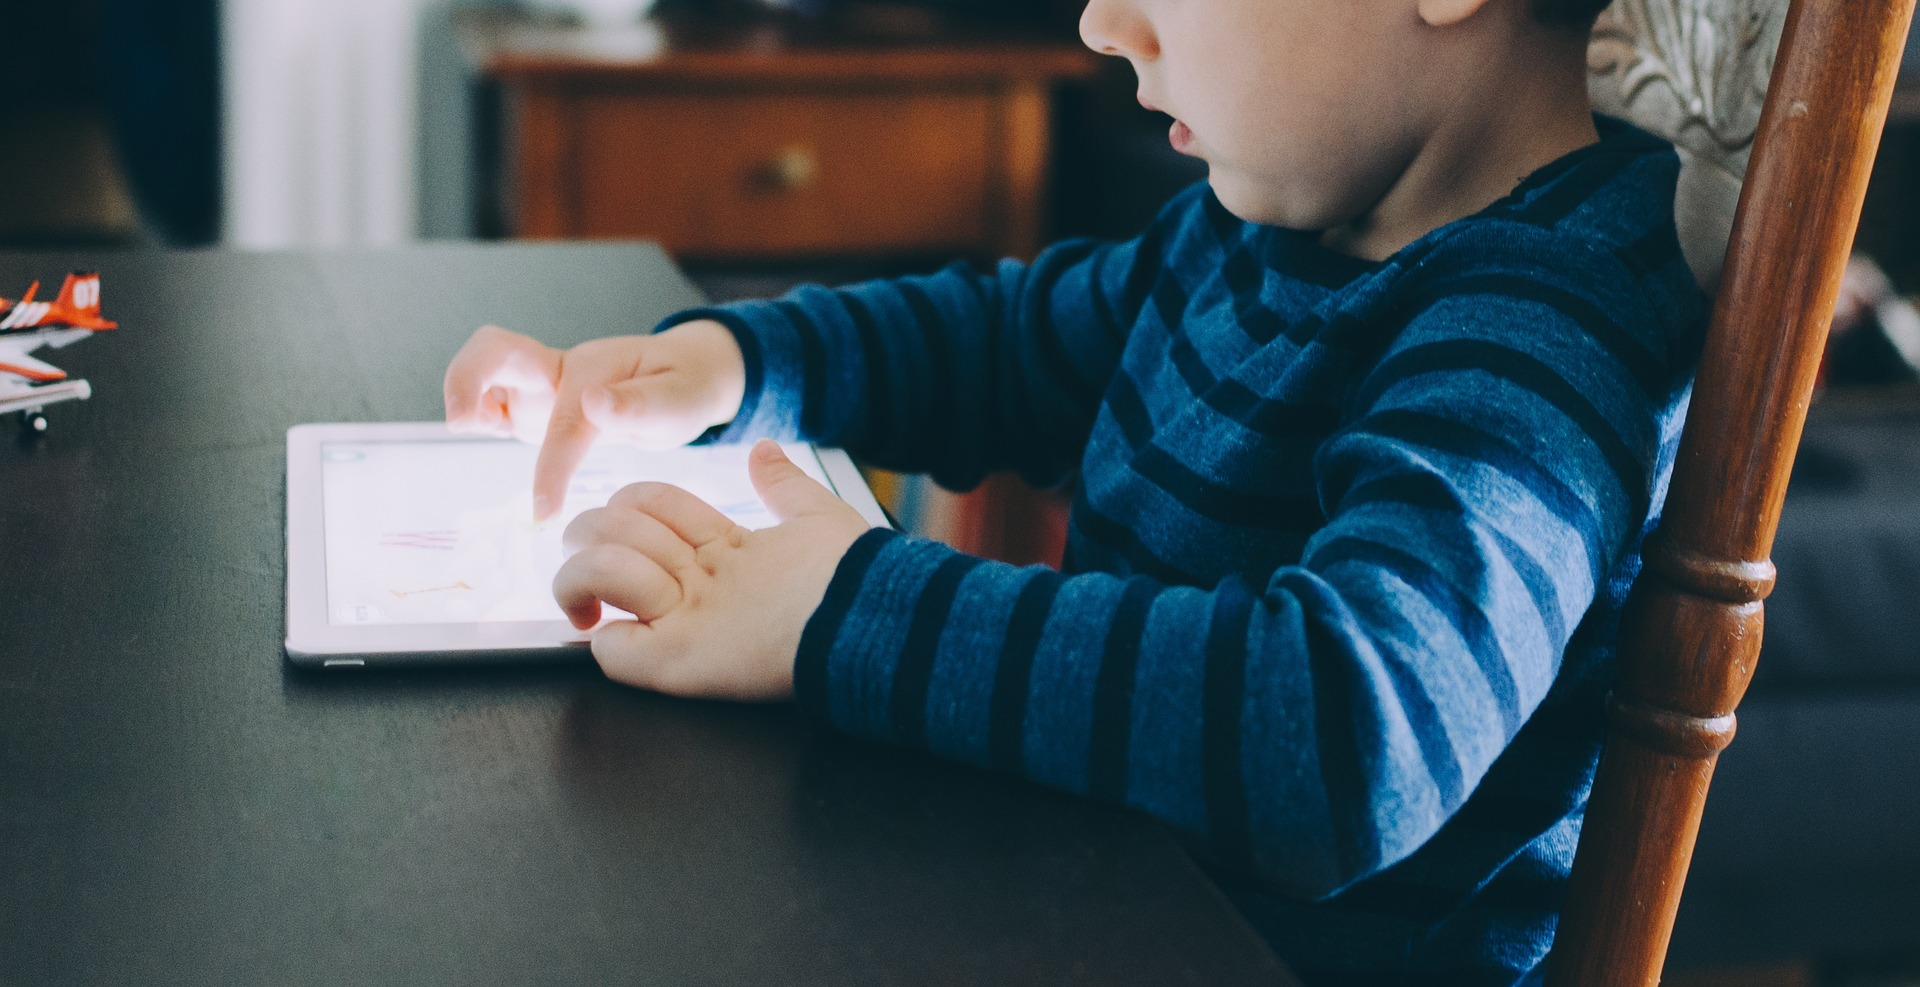 photo image FaceMetrics lands $2 million to gamify kids' screen time and track immersion with AI